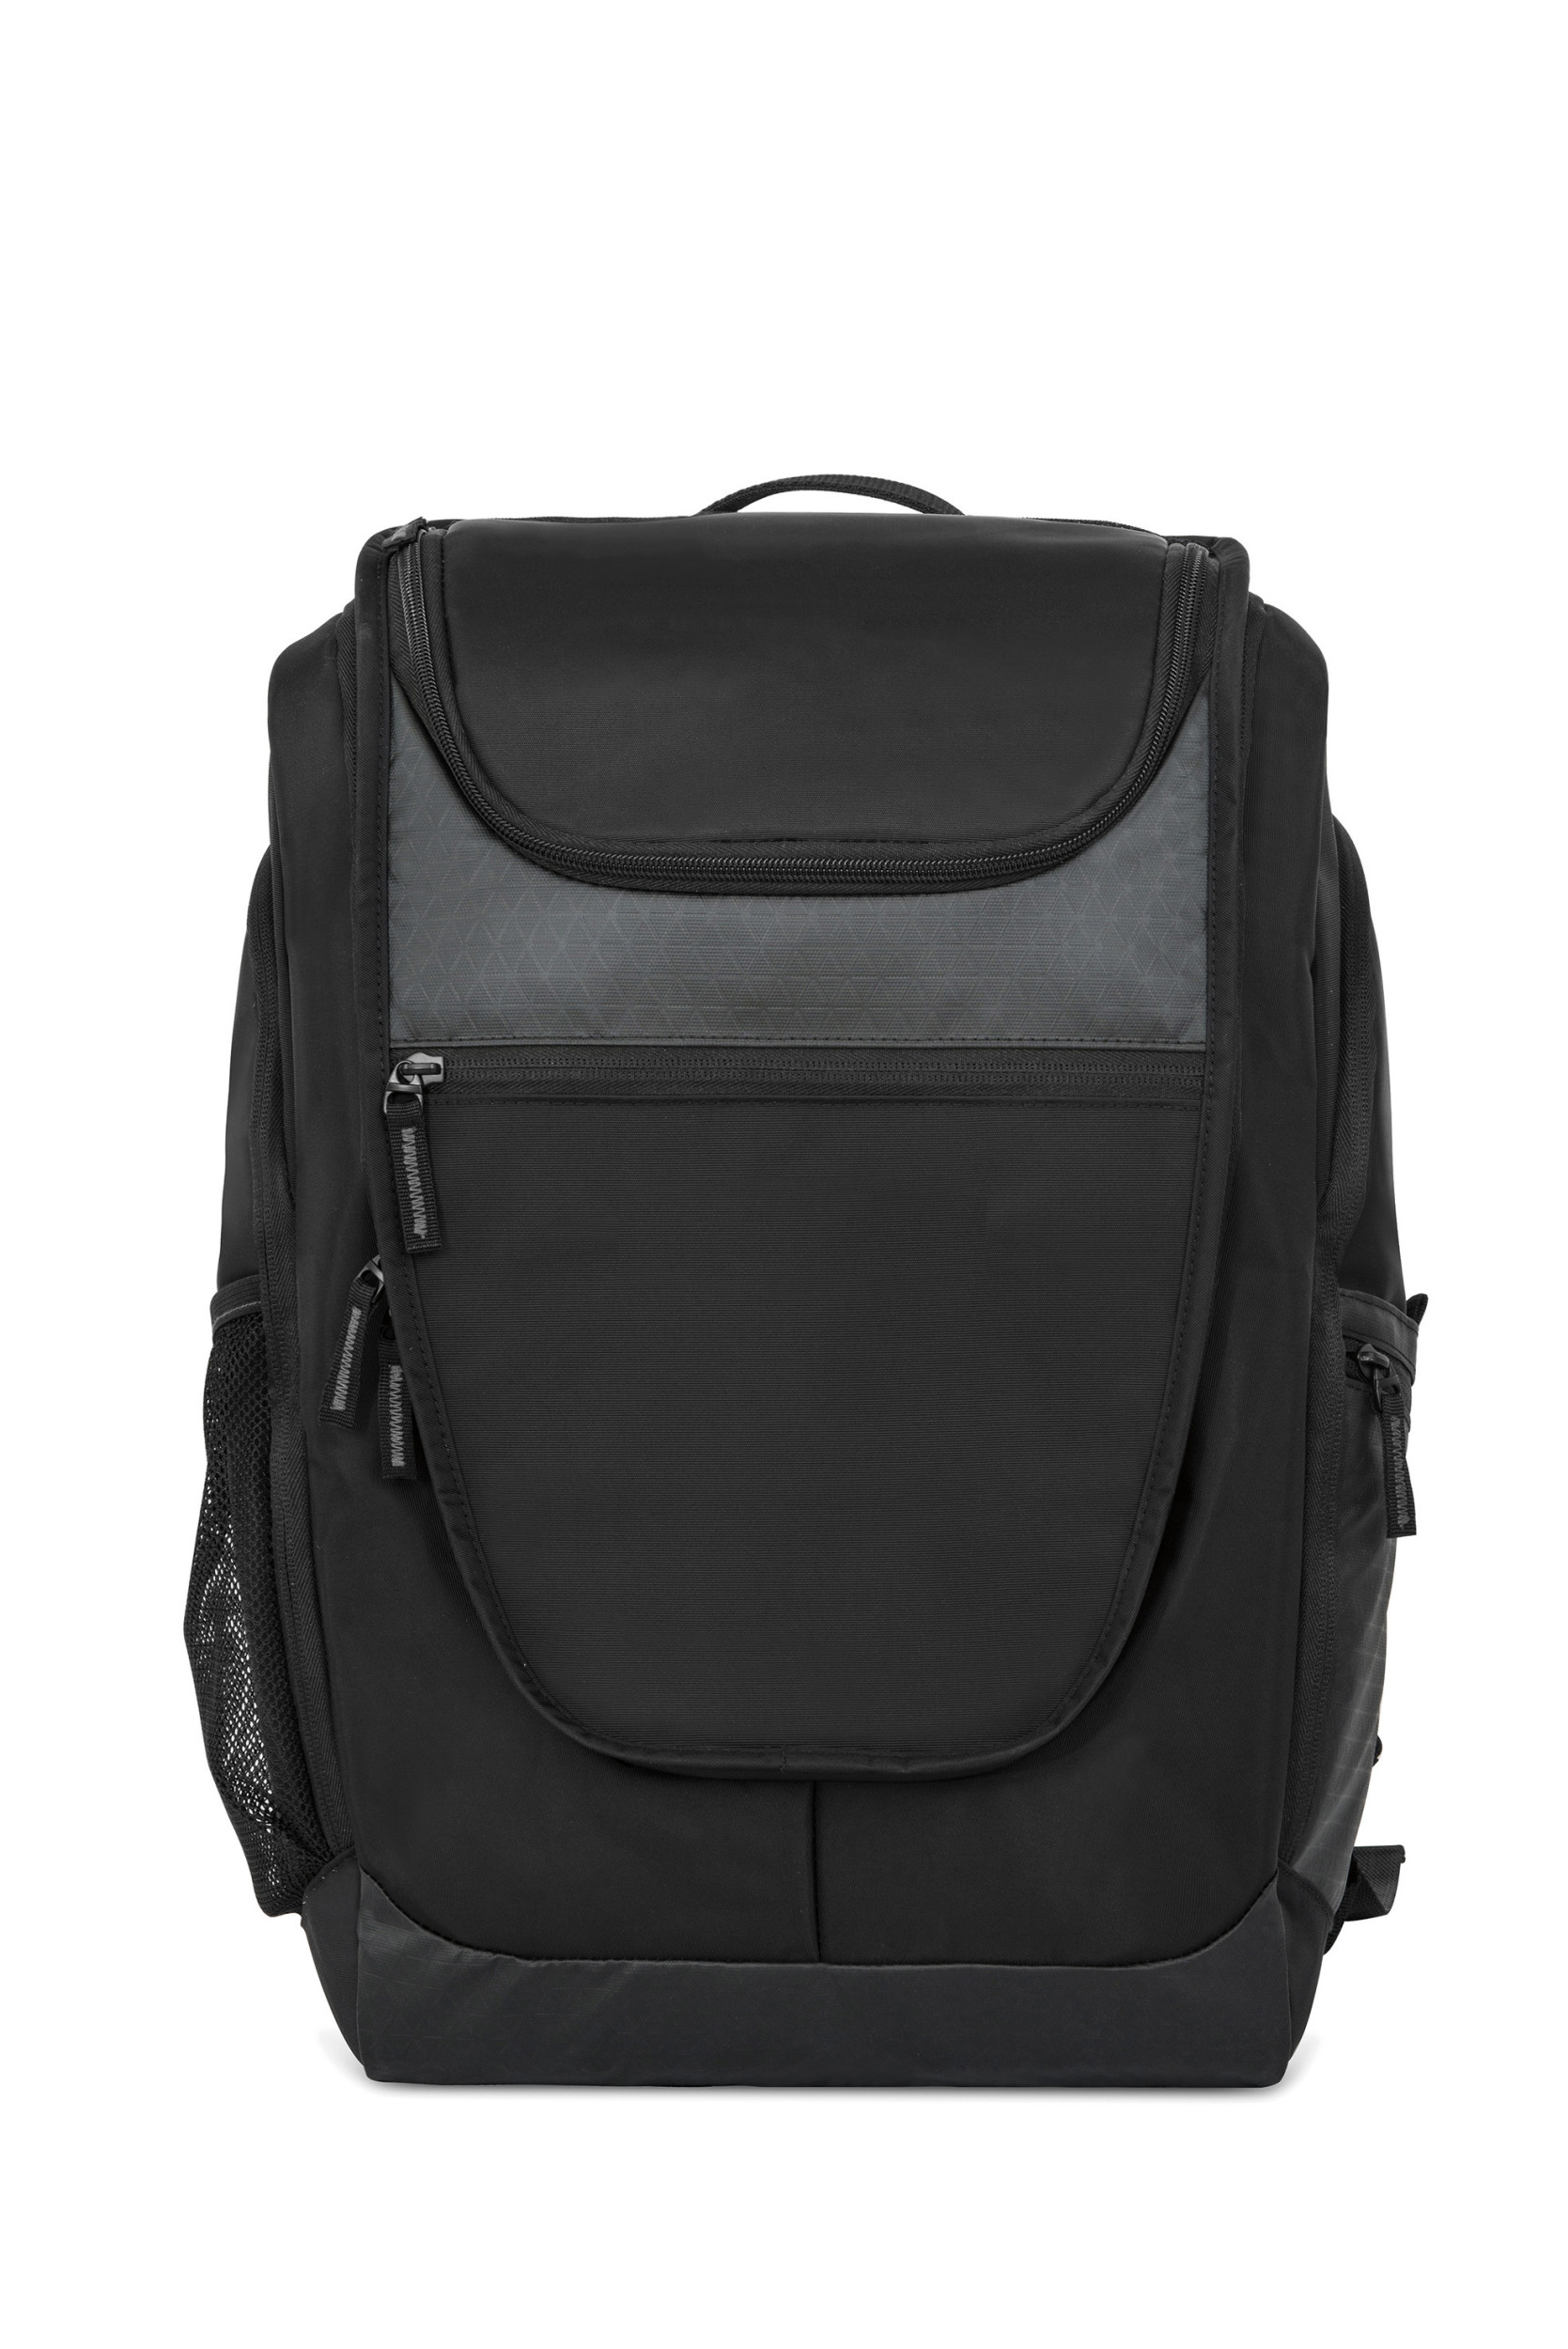 Gemline 5239 - Reveal Computer Backpack